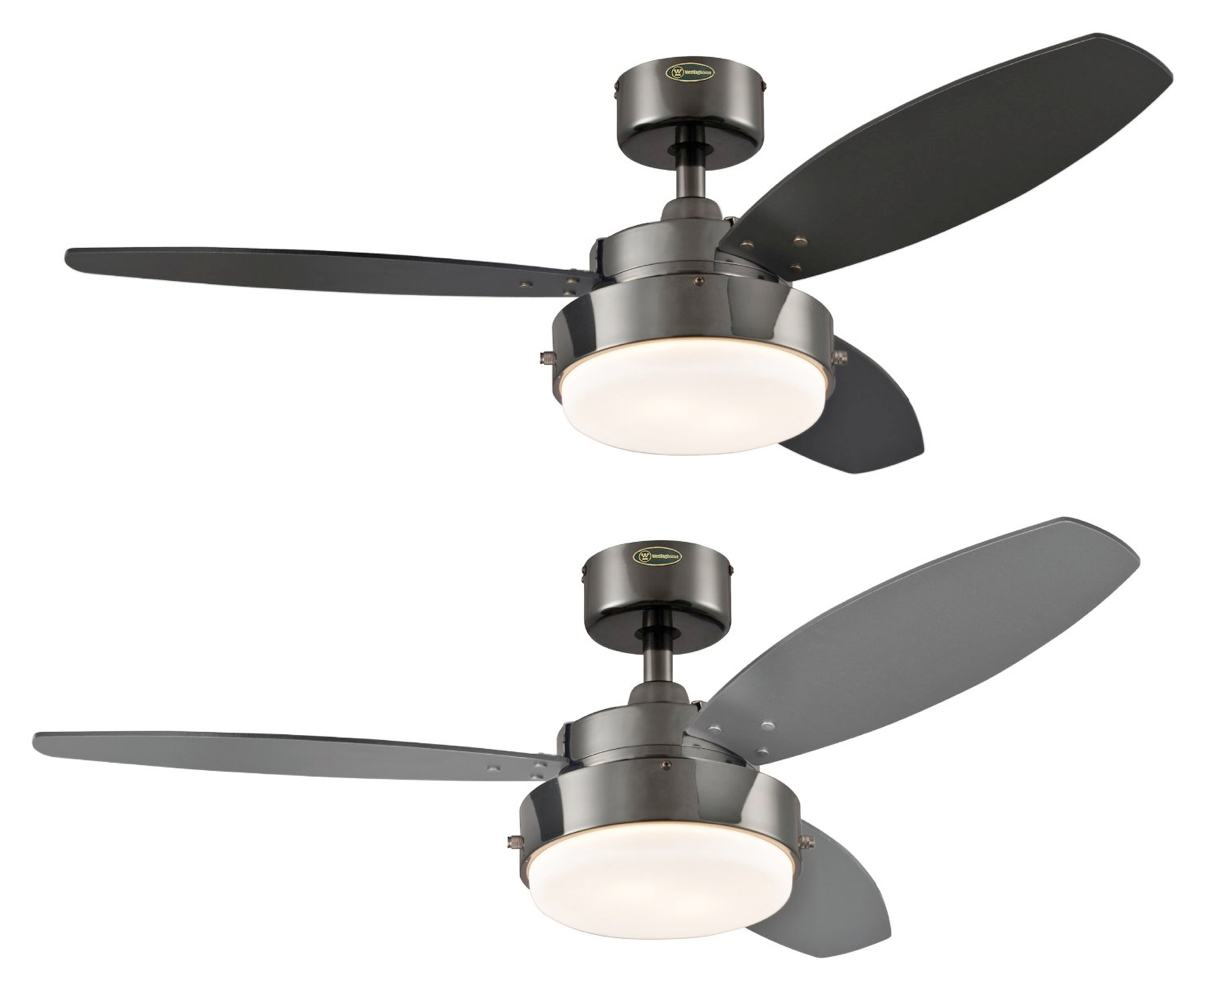 Westinghouse 2 Light 42 Quot Reversible 3 Blade Indoor Ceiling Fan Gun Metal Cool Ebay